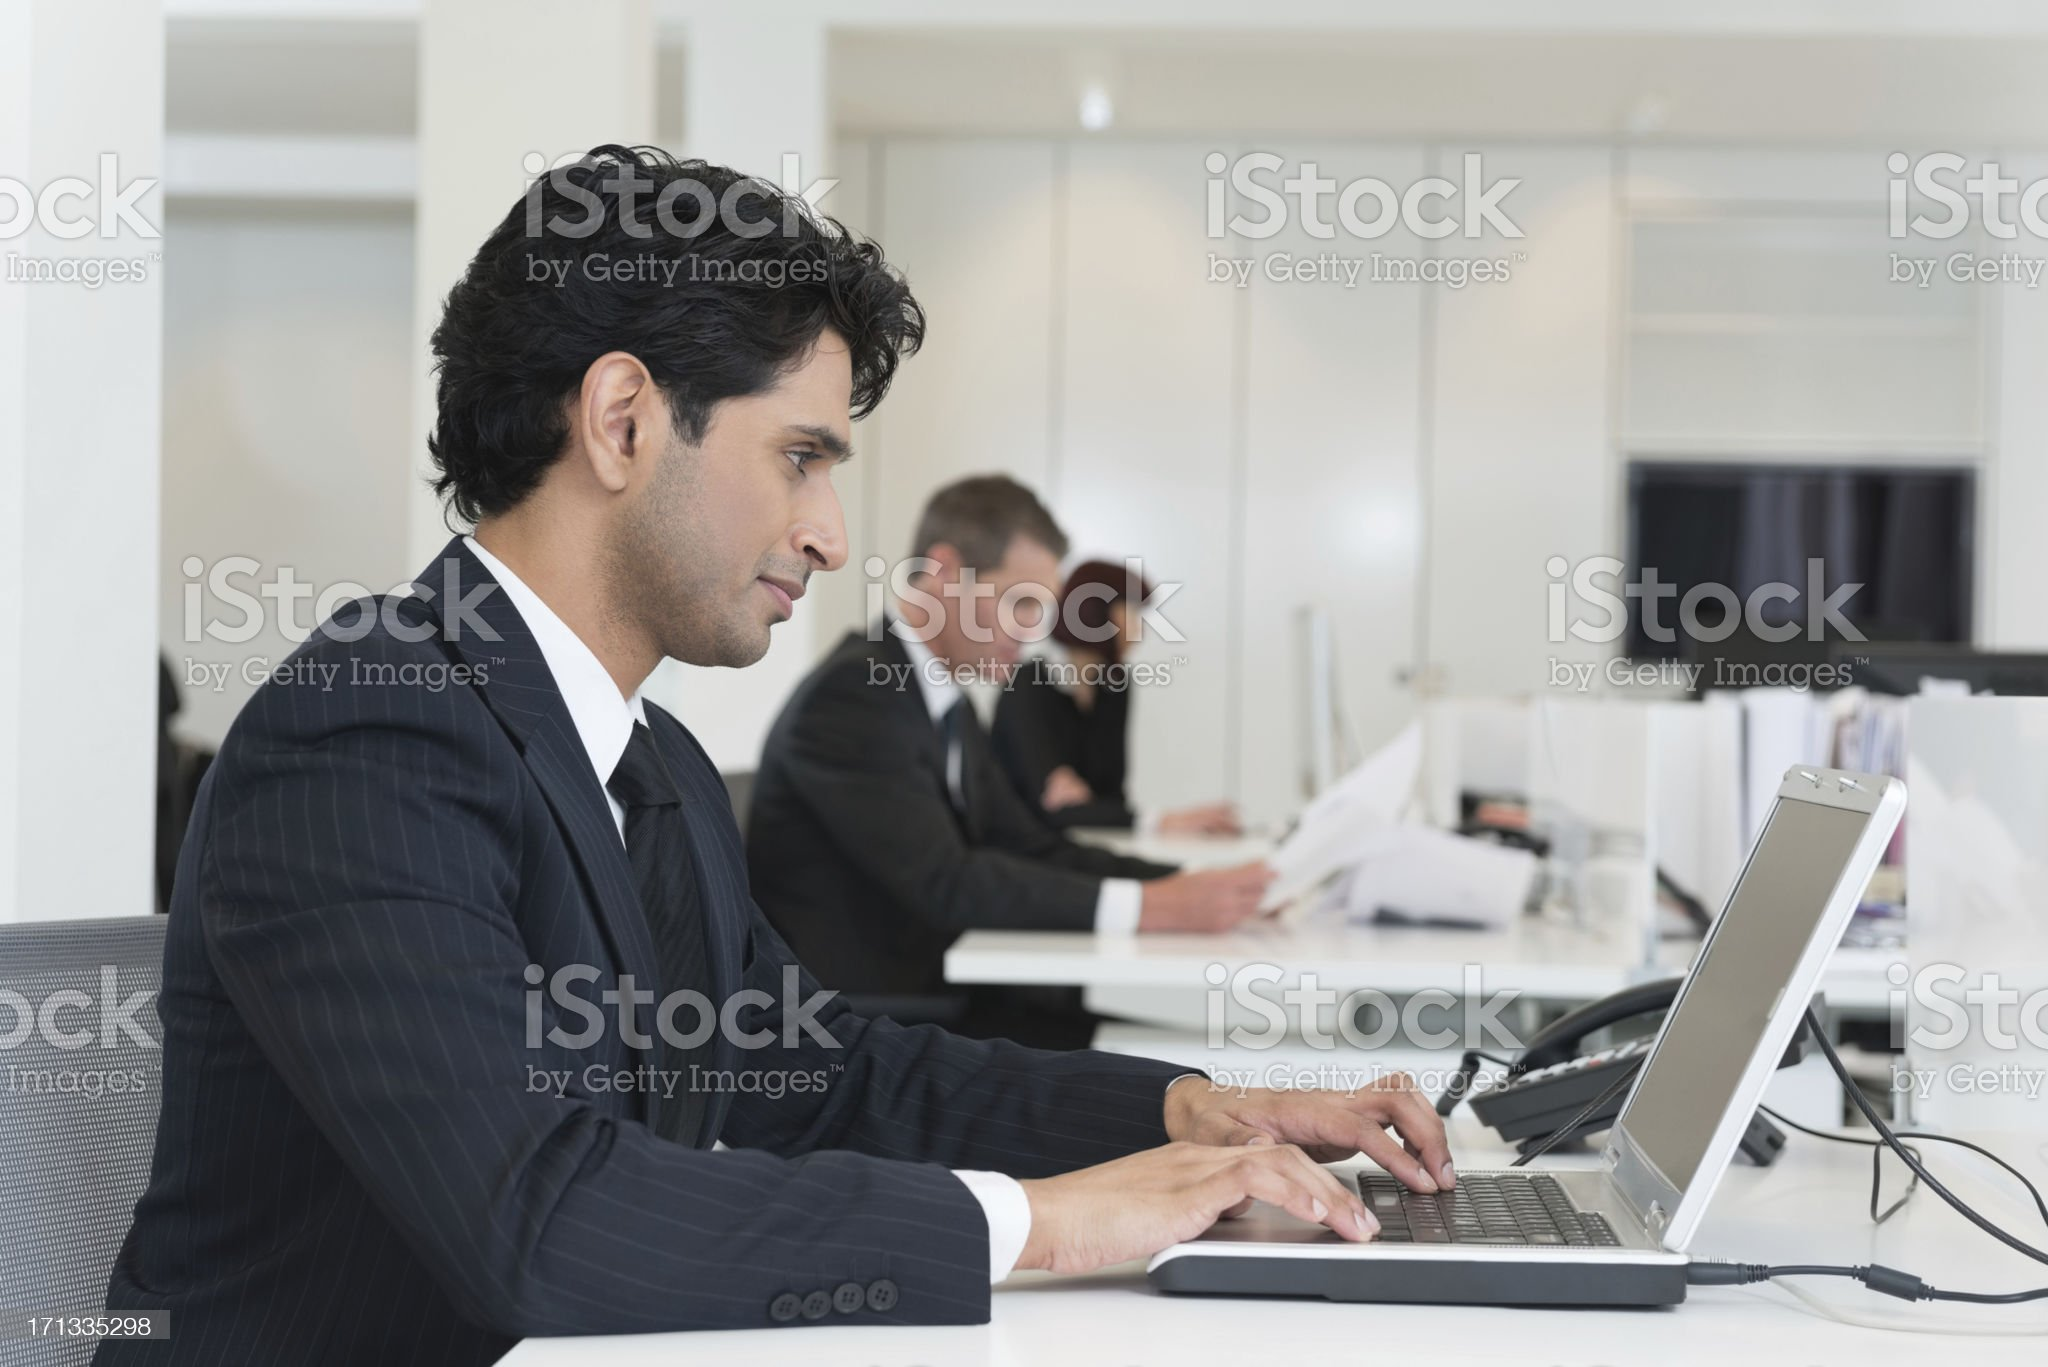 Business People Working On Laptops royalty-free stock photo